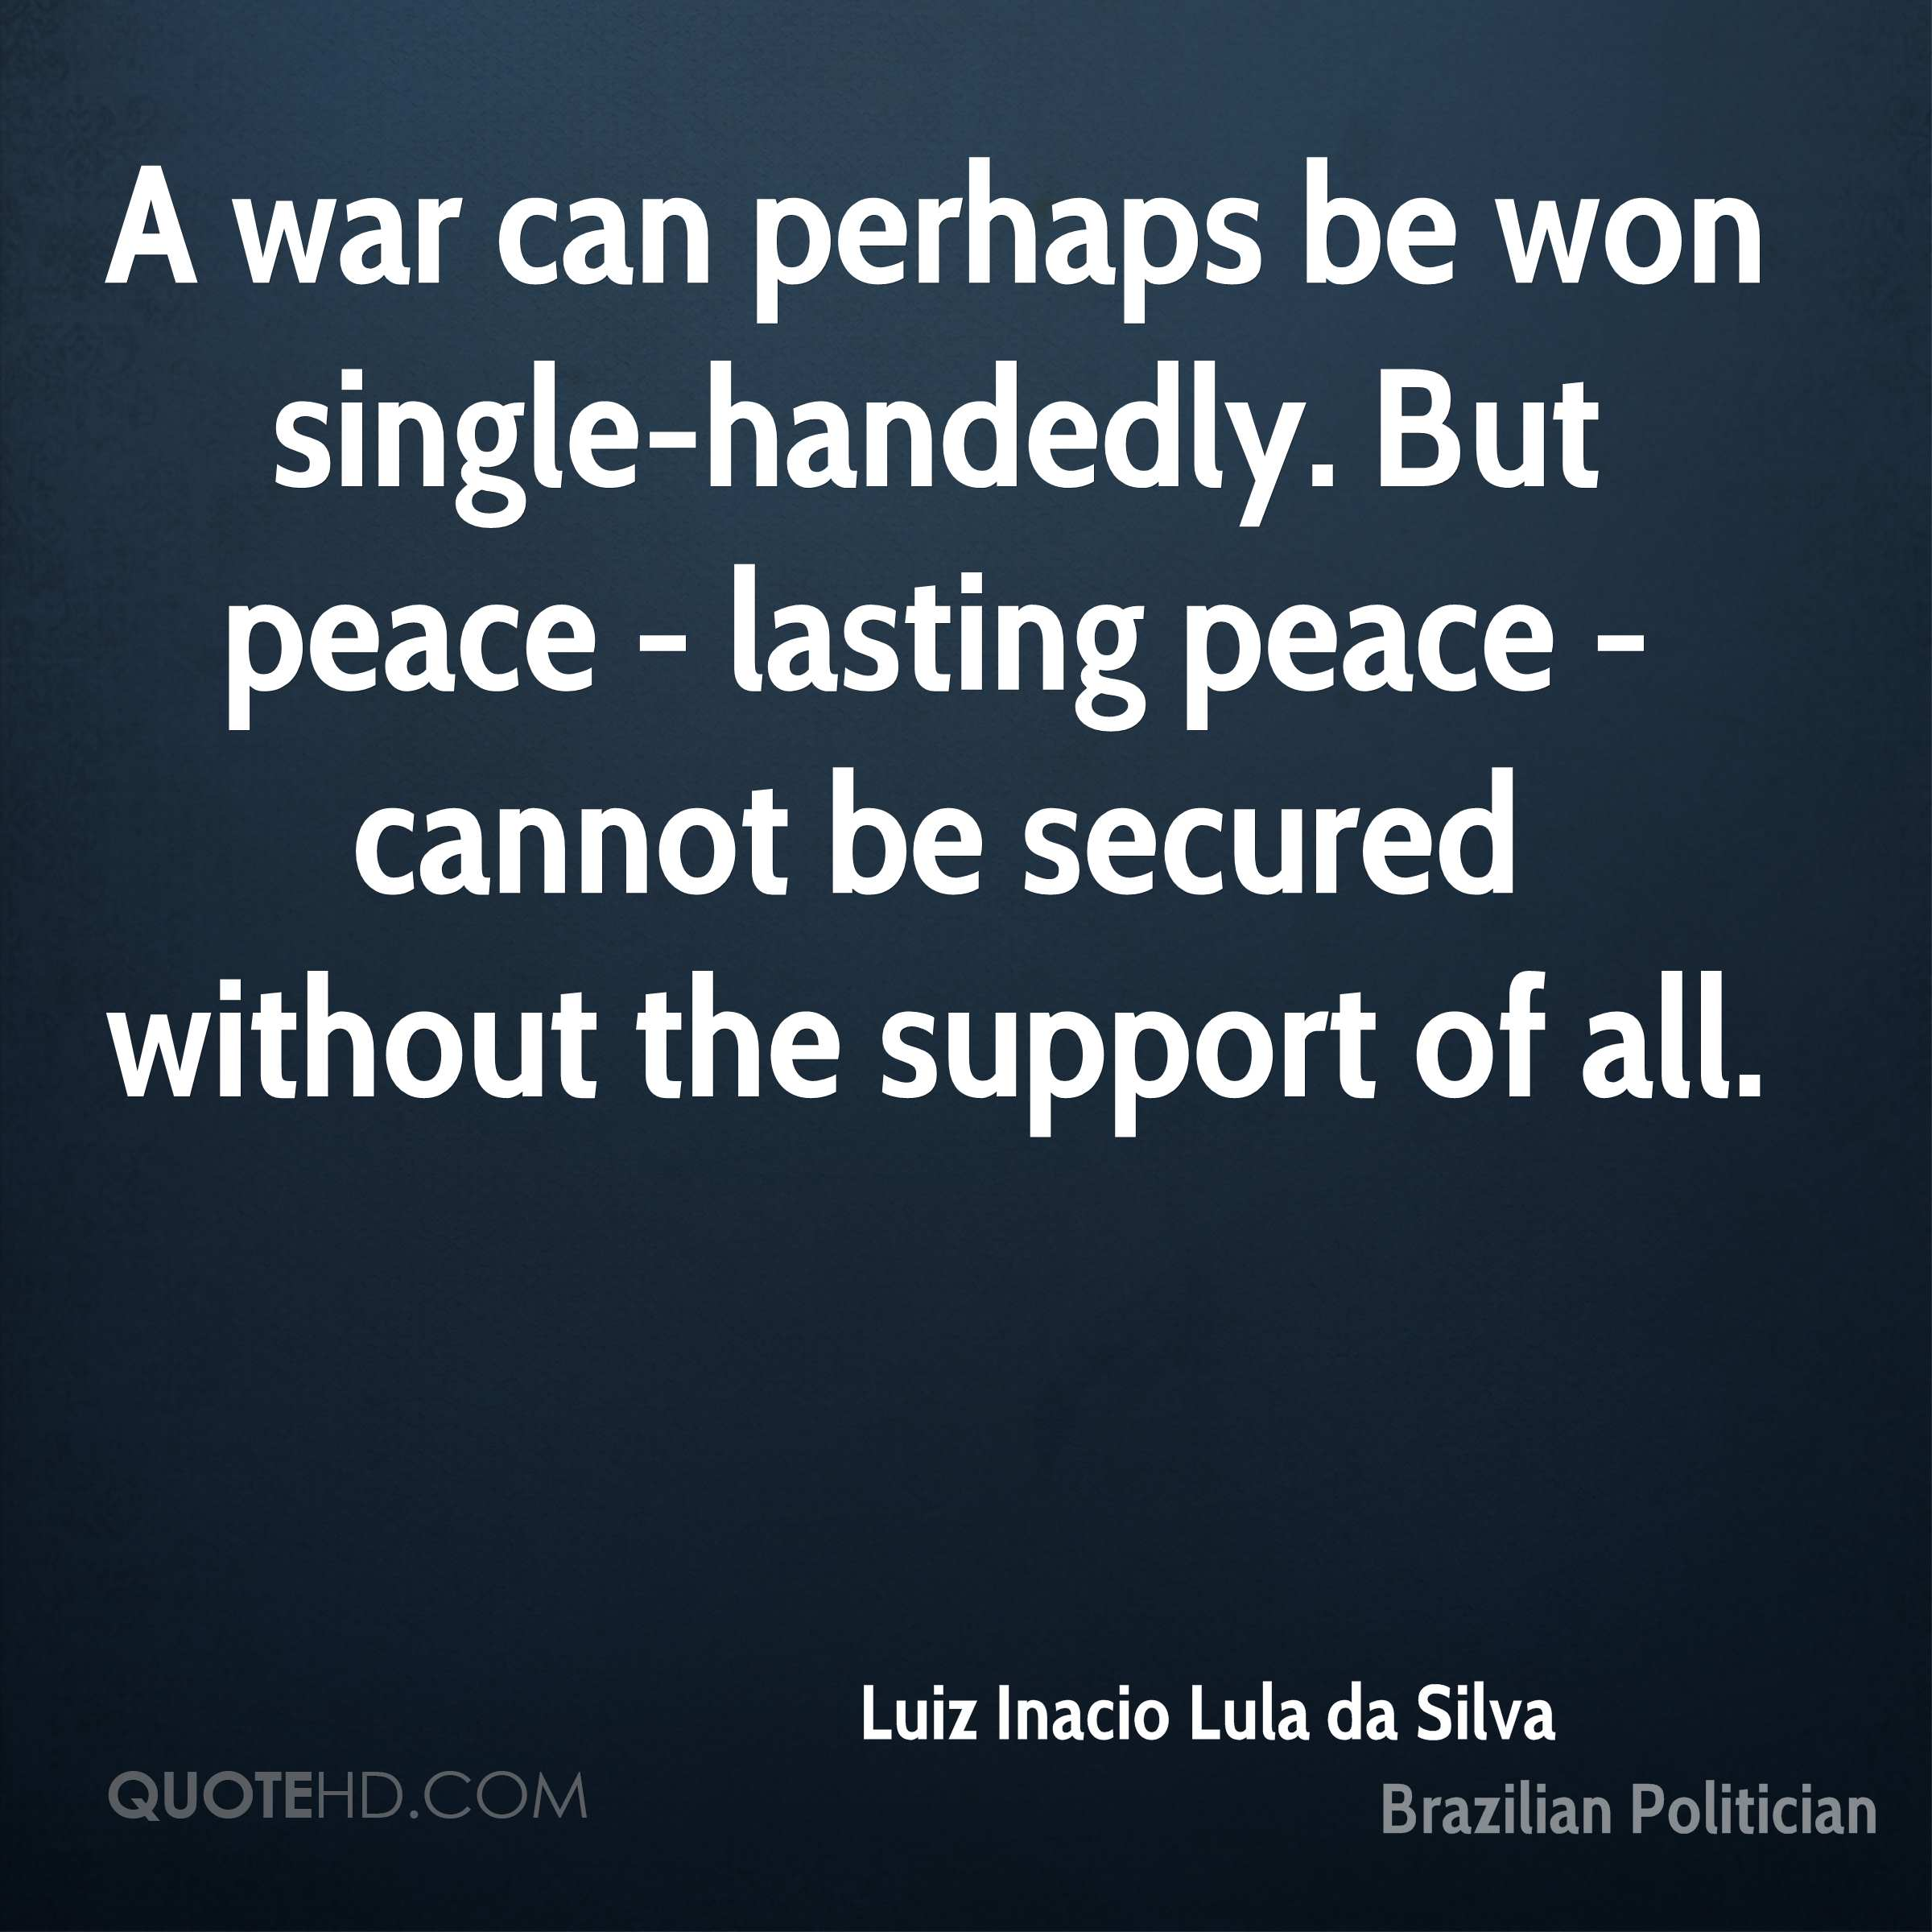 A war can perhaps be won single-handedly. But peace - lasting peace - cannot be secured without the support of all.